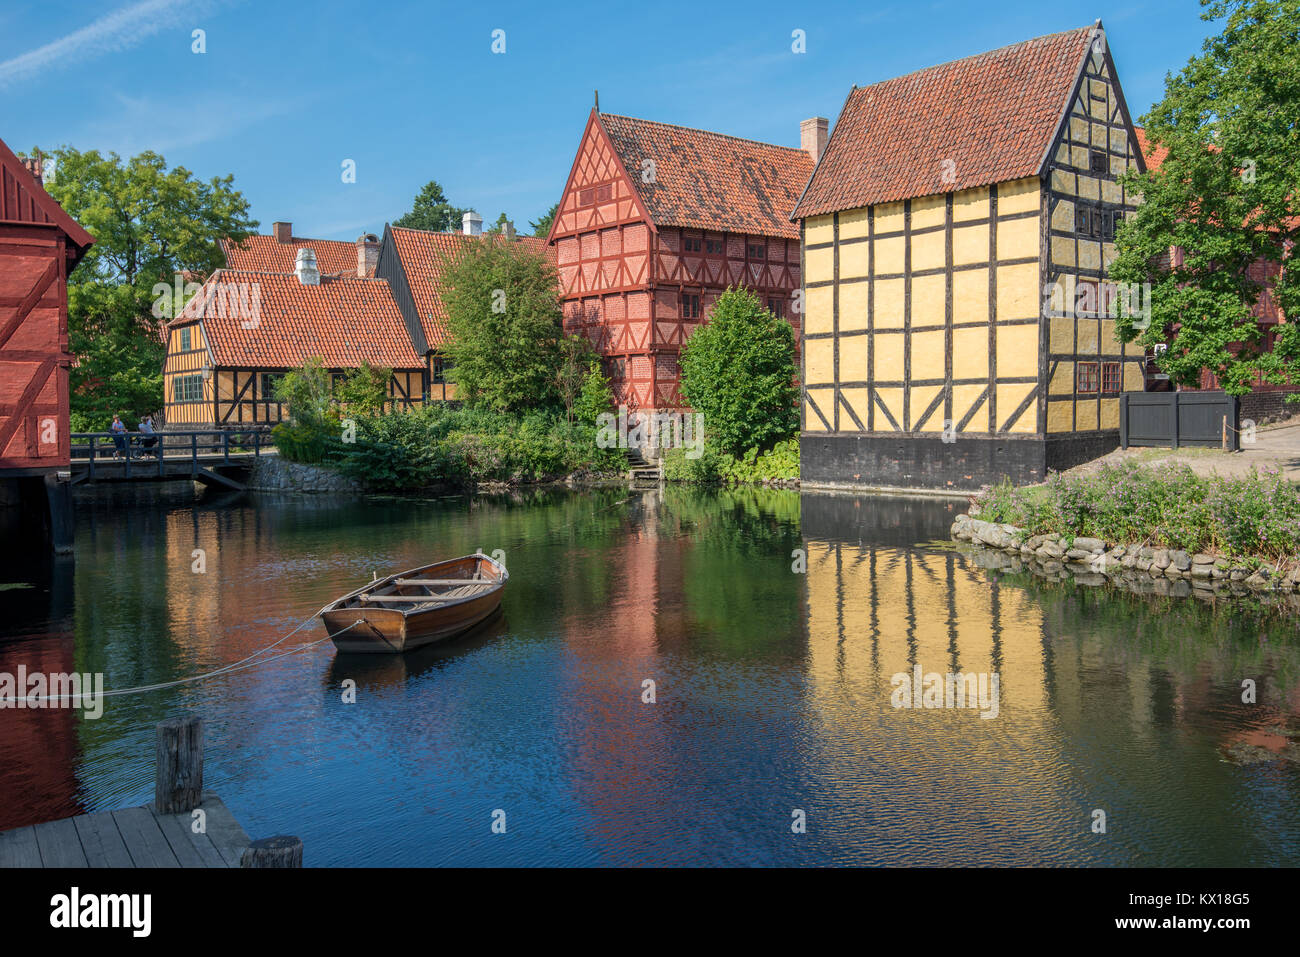 The Old Town in Aarhus is popular among tourists as it displays traditional Danish architecture from 16th century to 19th century. Stock Photo